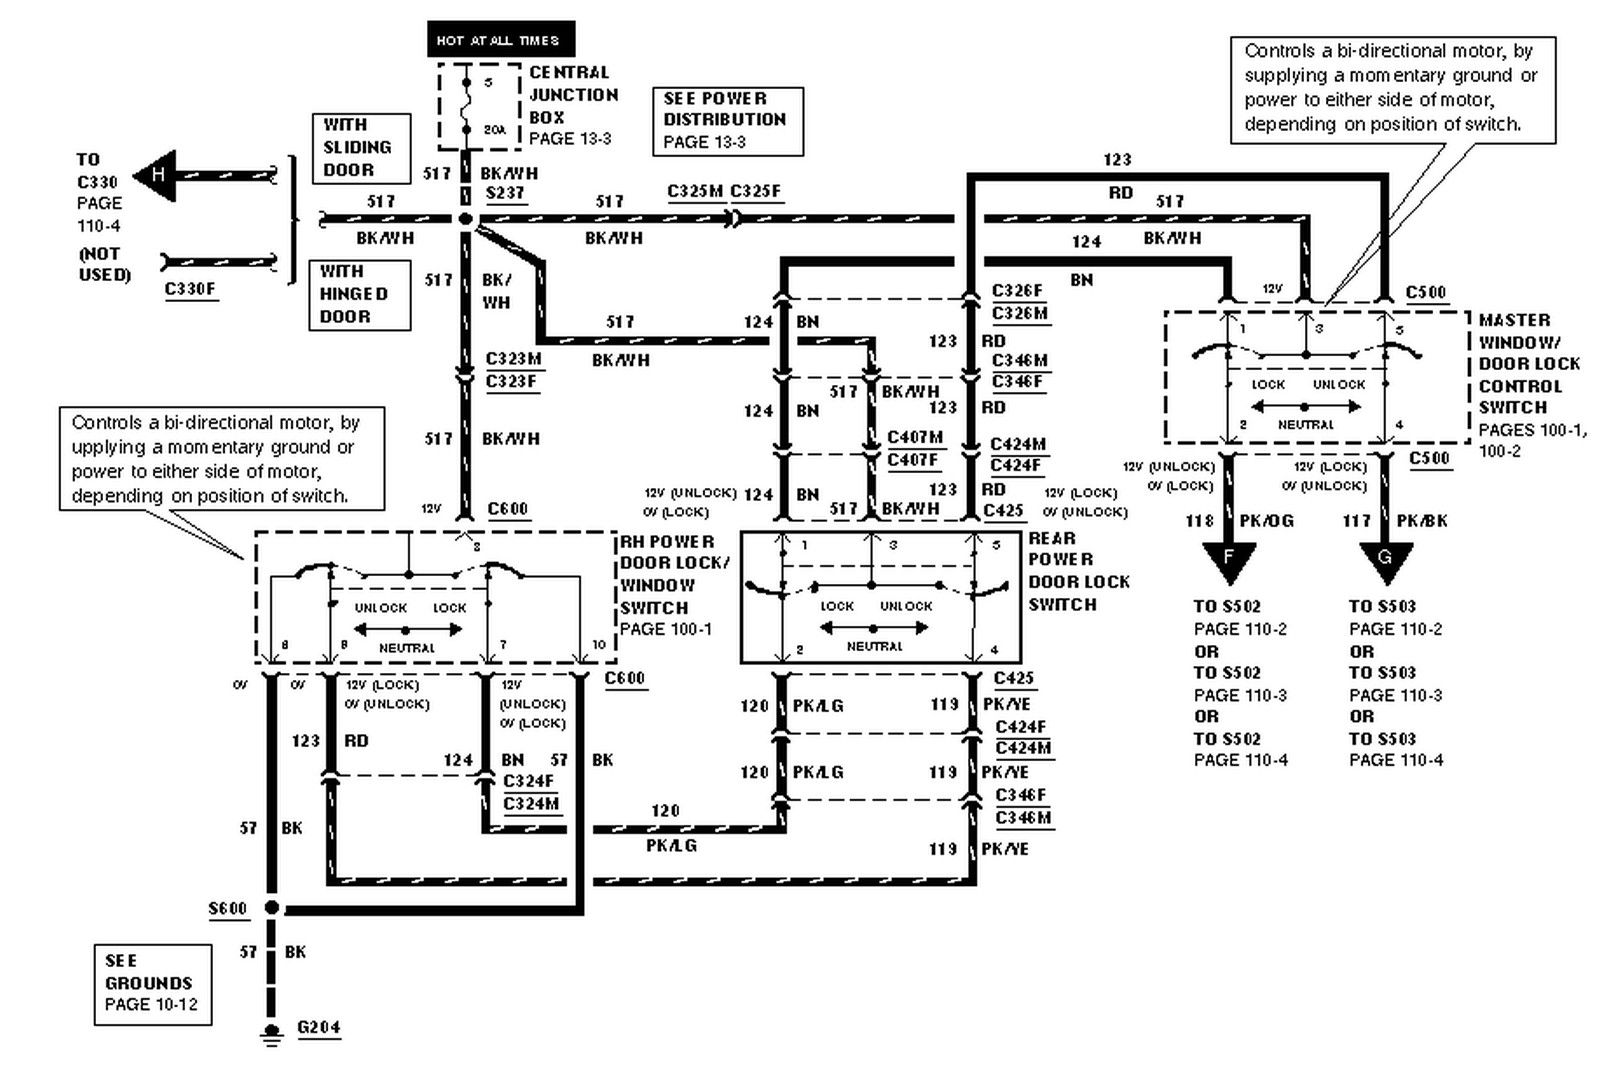 80 2010_11_05_235941_99_e_350_power_door_lock_wiring_diagram_e574233ae37af9677ff5fddb790386a28f9dd7ad 2011 f 150 wiring parts diagrams wiring diagram simonand wiring diagram mirrors 2009 ford f150 truck at soozxer.org